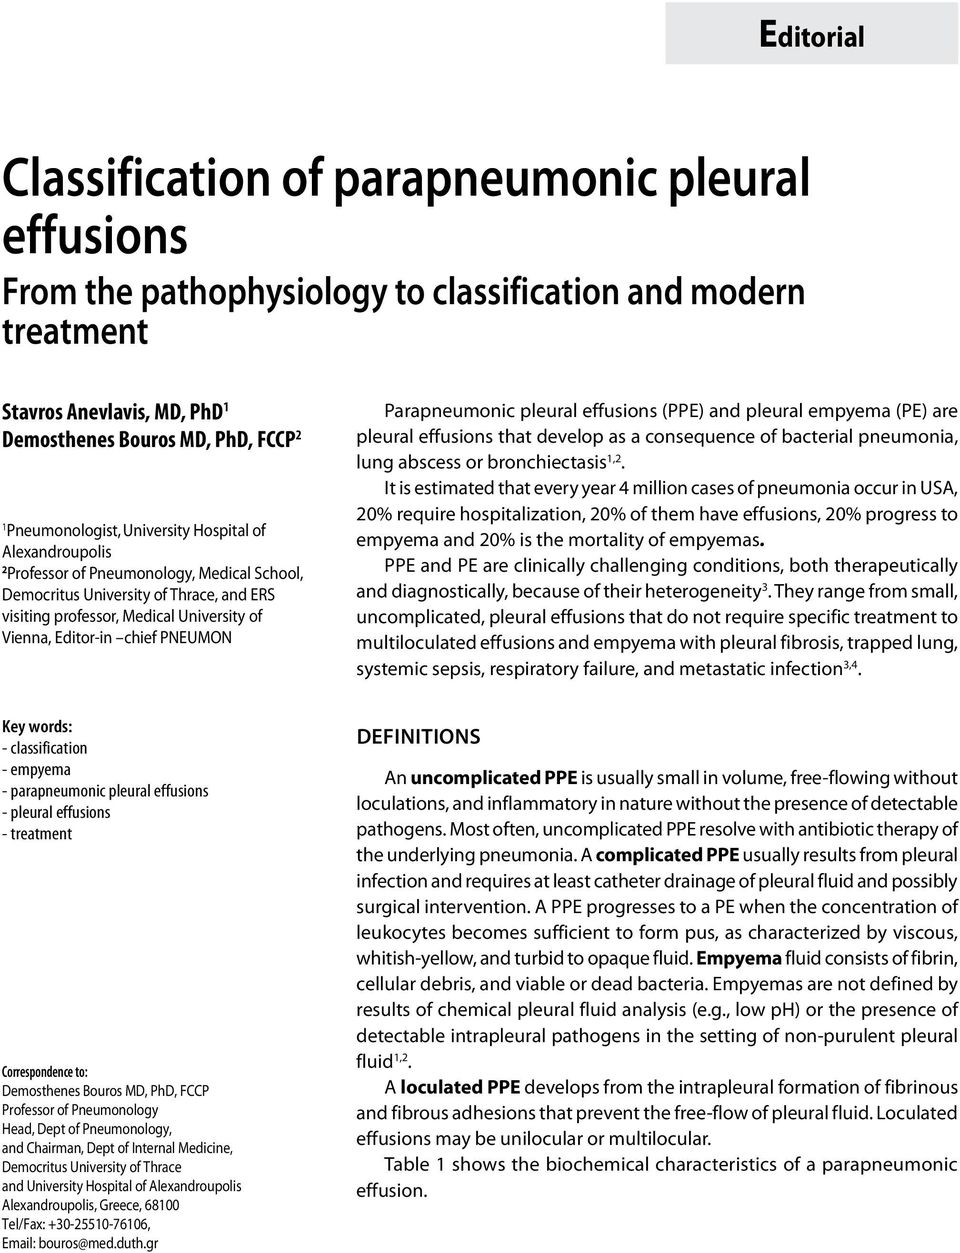 Editor-in chief PNEUMON Parapneumonic pleural effusions (PPE) and pleural empyema (PE) are pleural effusions that develop as a consequence of bacterial pneumonia, lung abscess or bronchiectasis 1,2.